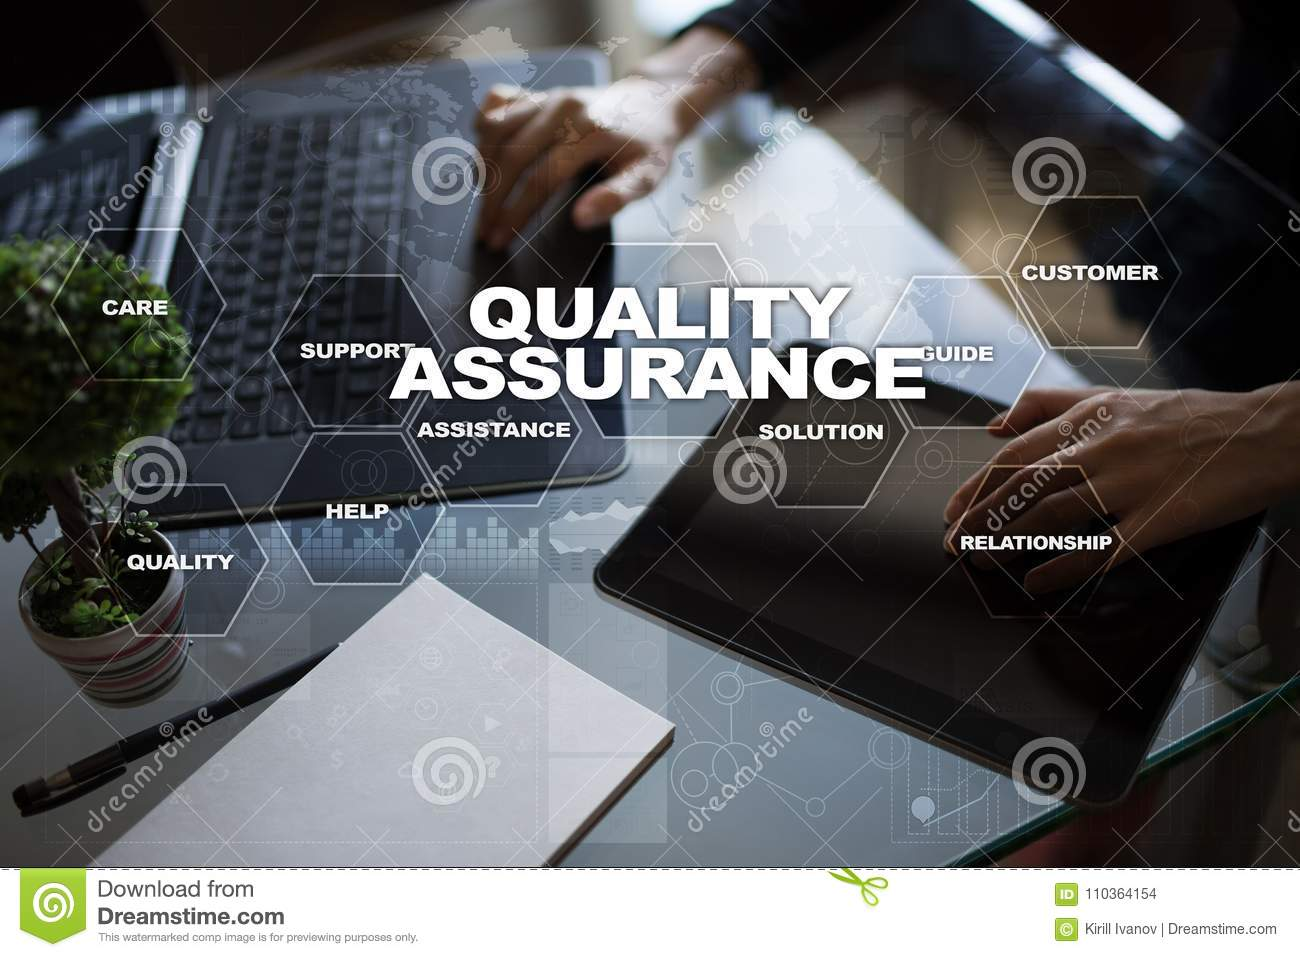 Quality assurance concept on the virtual screen business concept royalty free stock photo download quality assurance concept on the virtual reheart Images